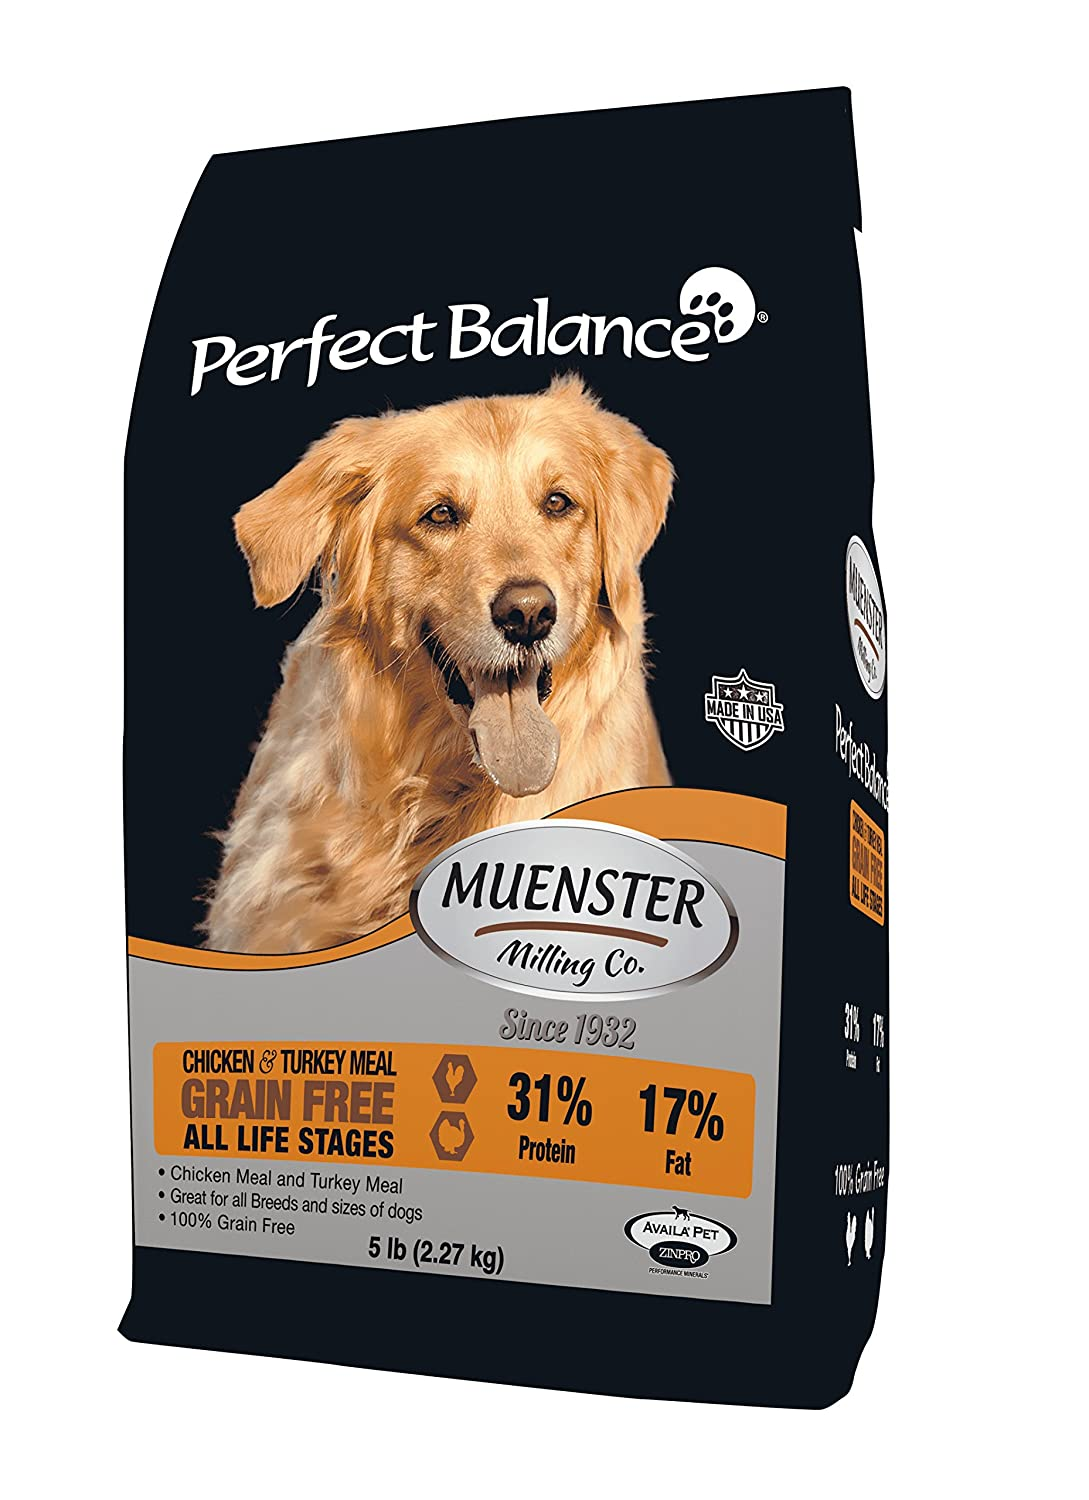 Muenster Milling Co. Perfect Balance Grain Free Dog Food